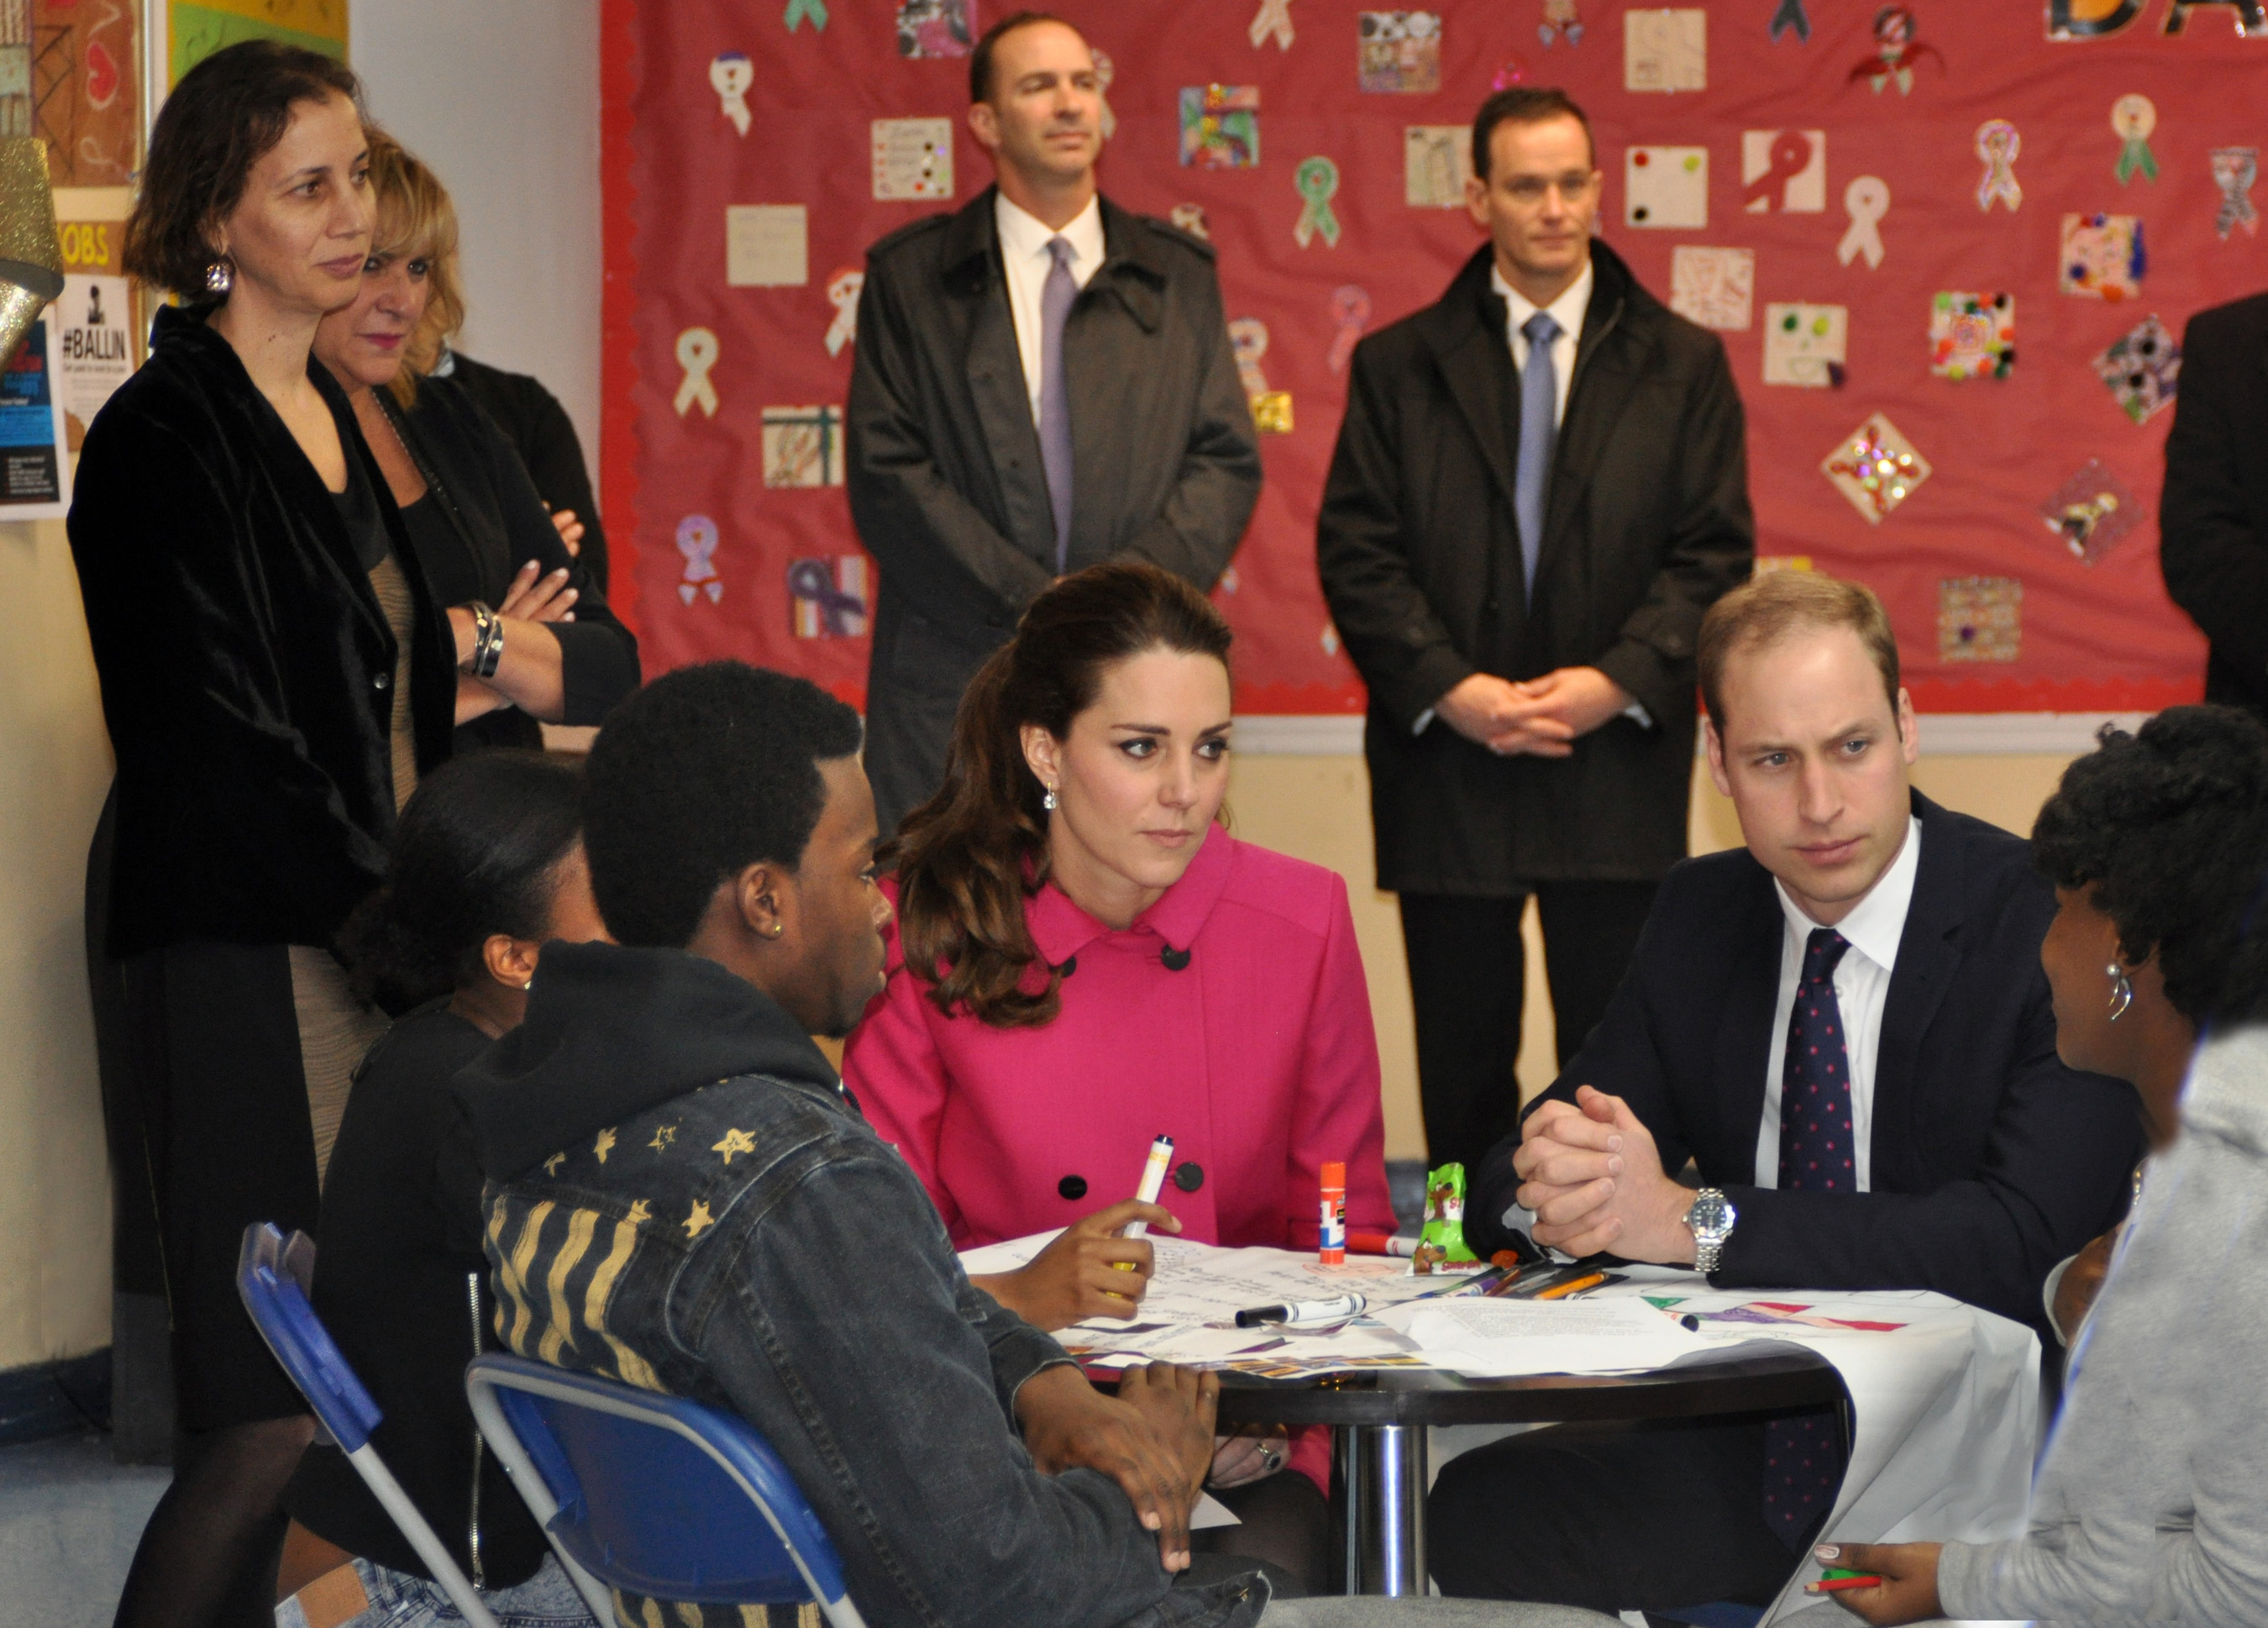 The Duke and Duchess spent time speaking with youth from The Door and The CityKids Foundation during their ...